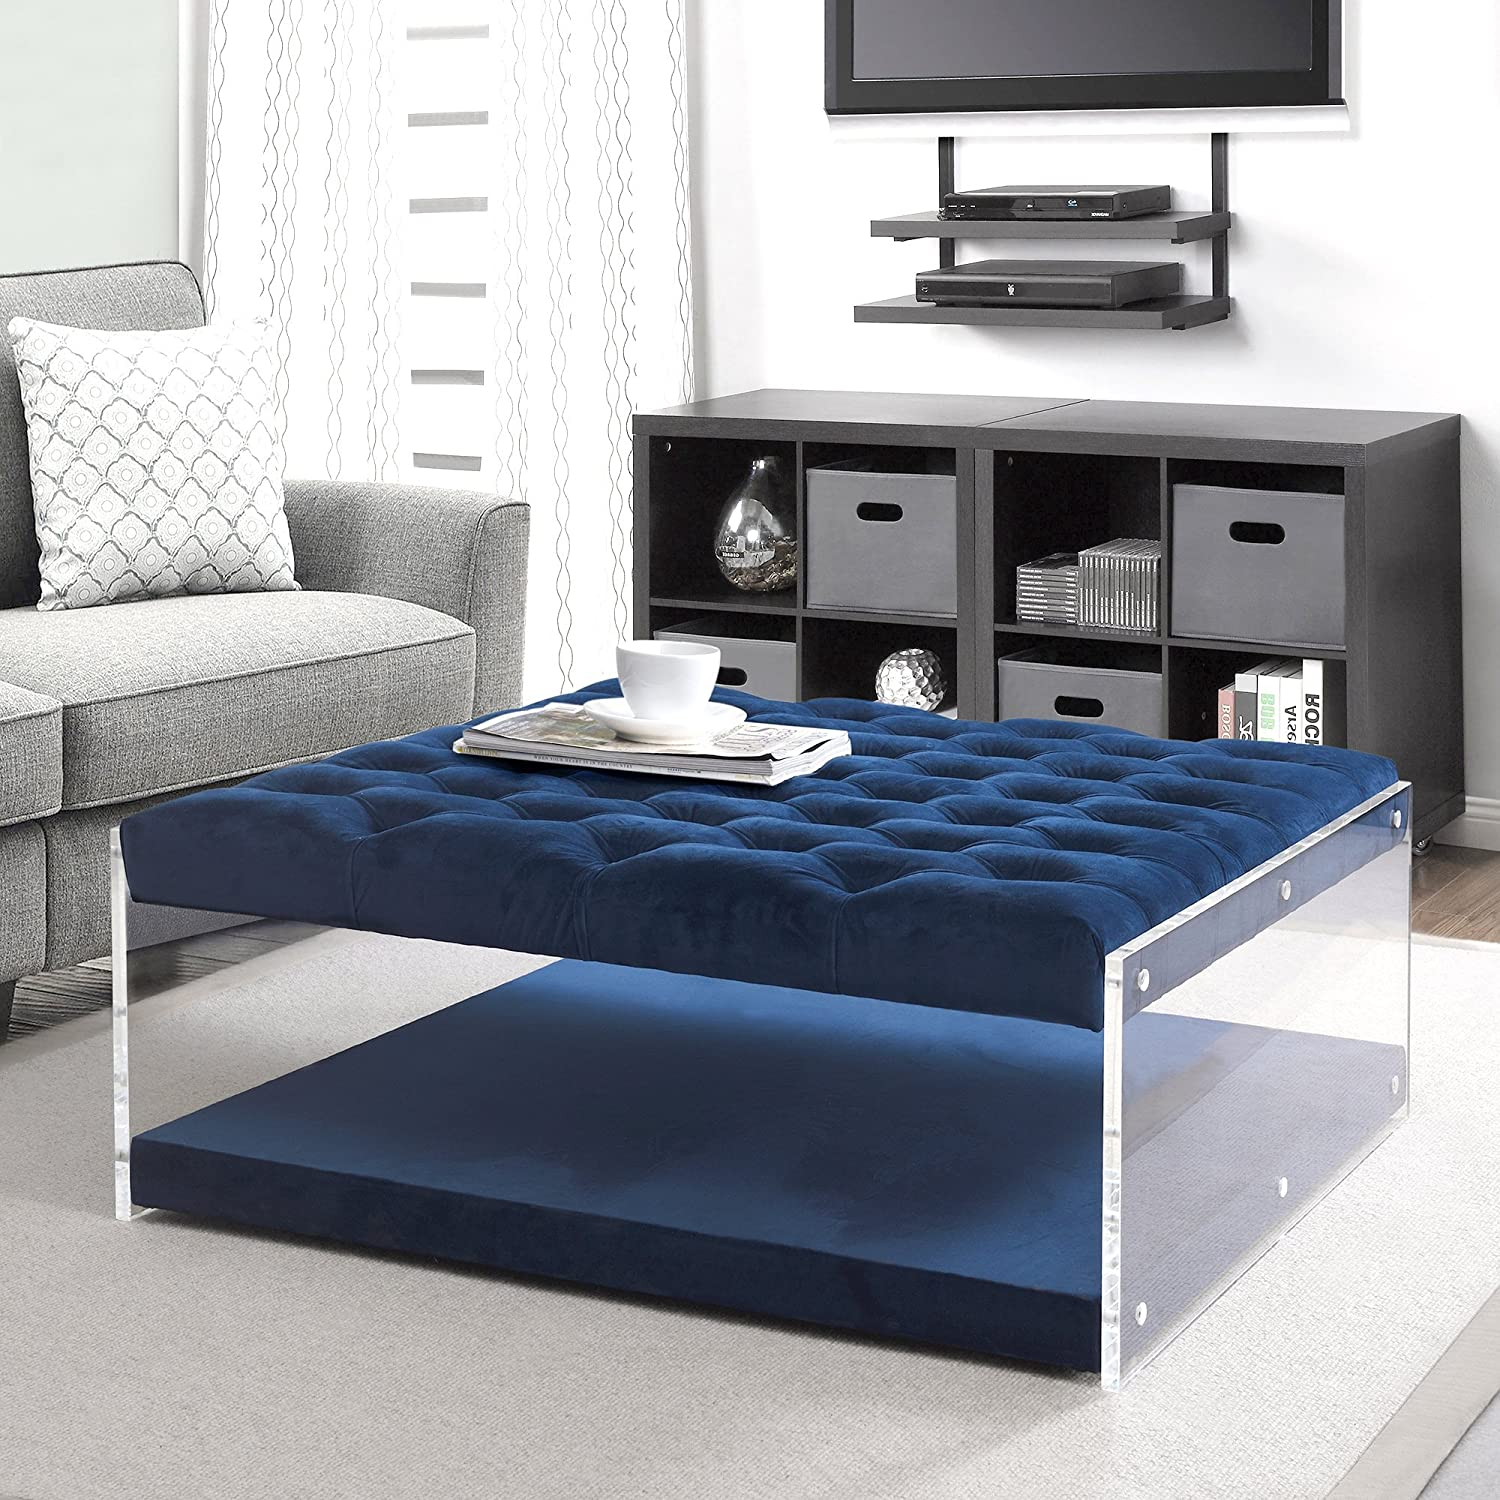 competitive price 16d3b 655a6 Inspired Home Audrey Blue Velvet Acrylic Ottoman - Cocktail Coffee Table    Square Tufted   Nailhead